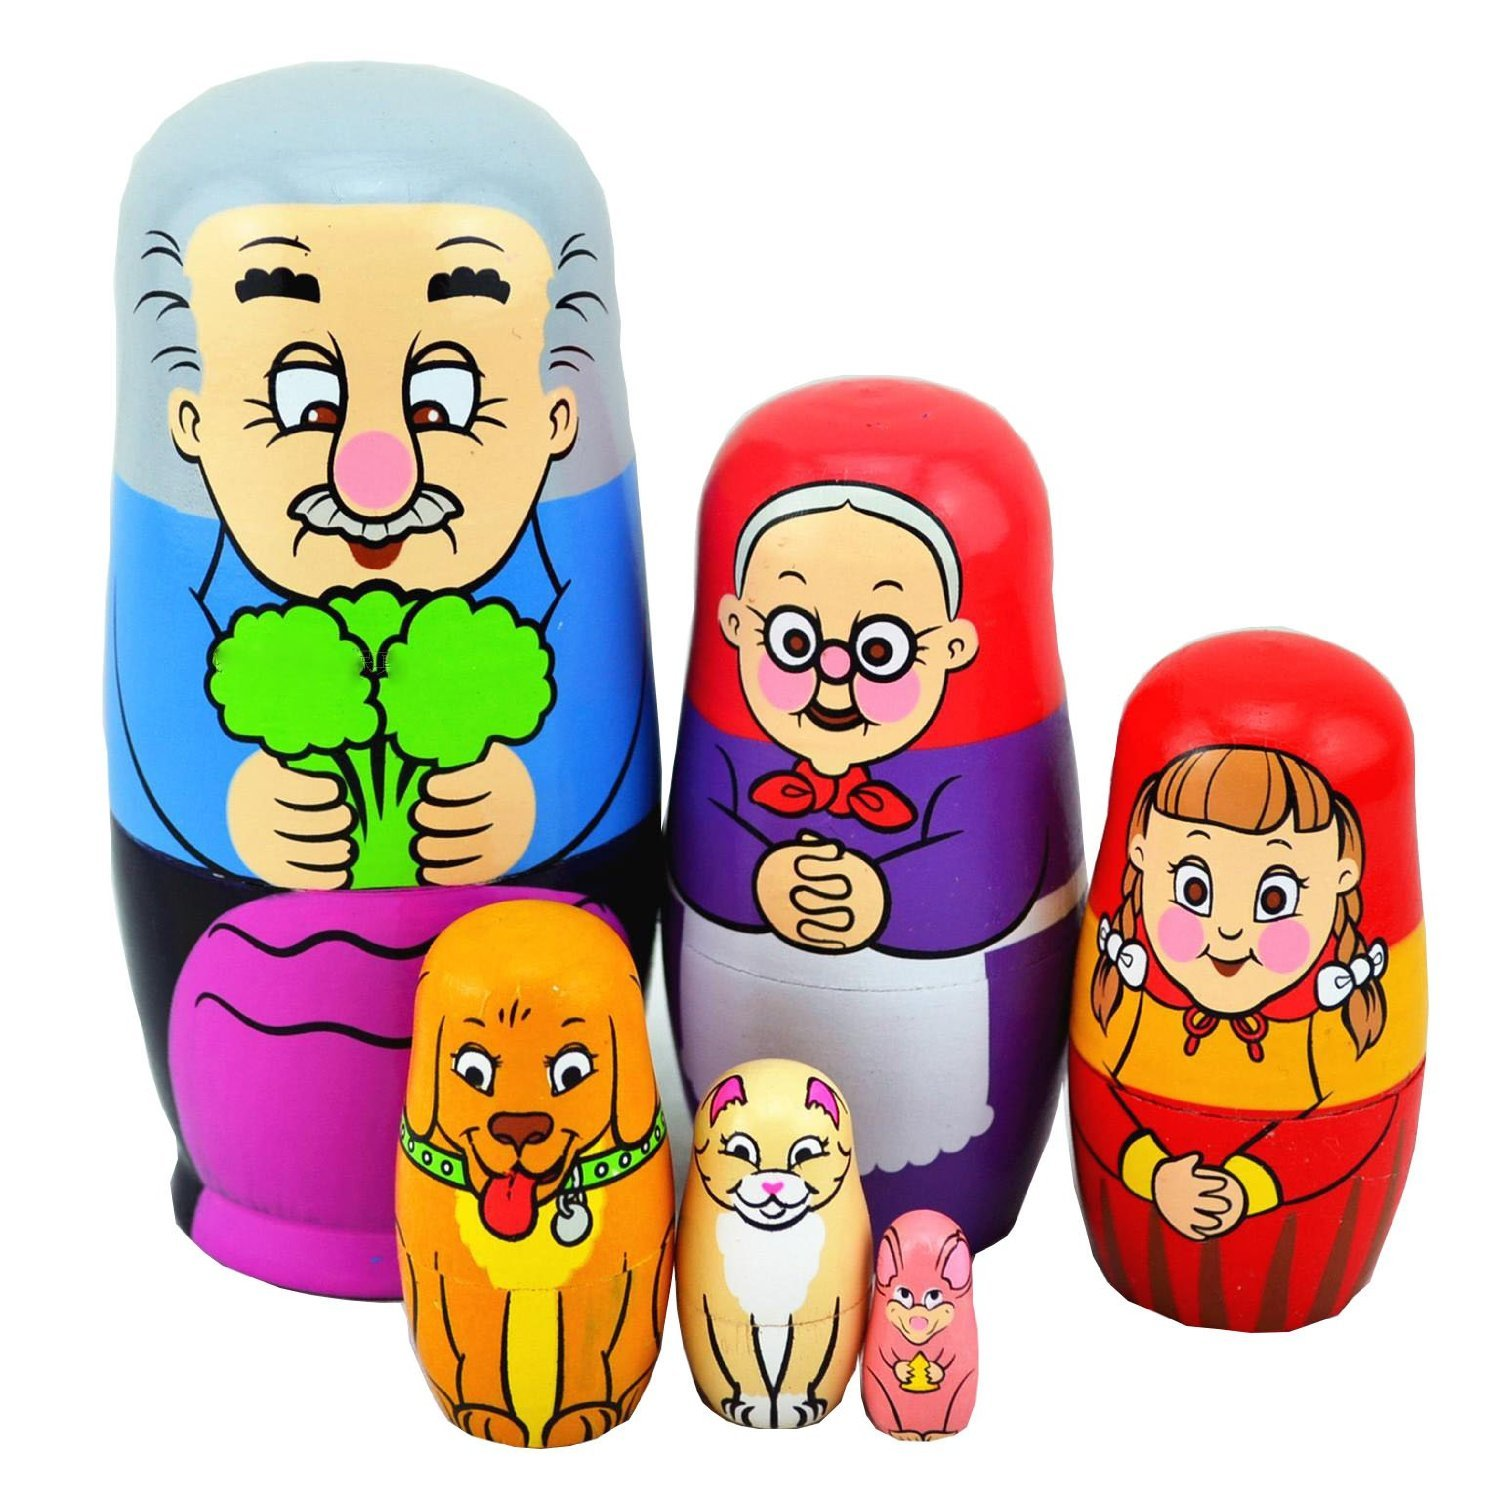 EVINIS Cute Lovely Grandpa and Carrot Family Nesting Dolls Matryoshk a Madness Russian Doll Popular Handmade Kids Girl Gifts Toy( Set of 6)